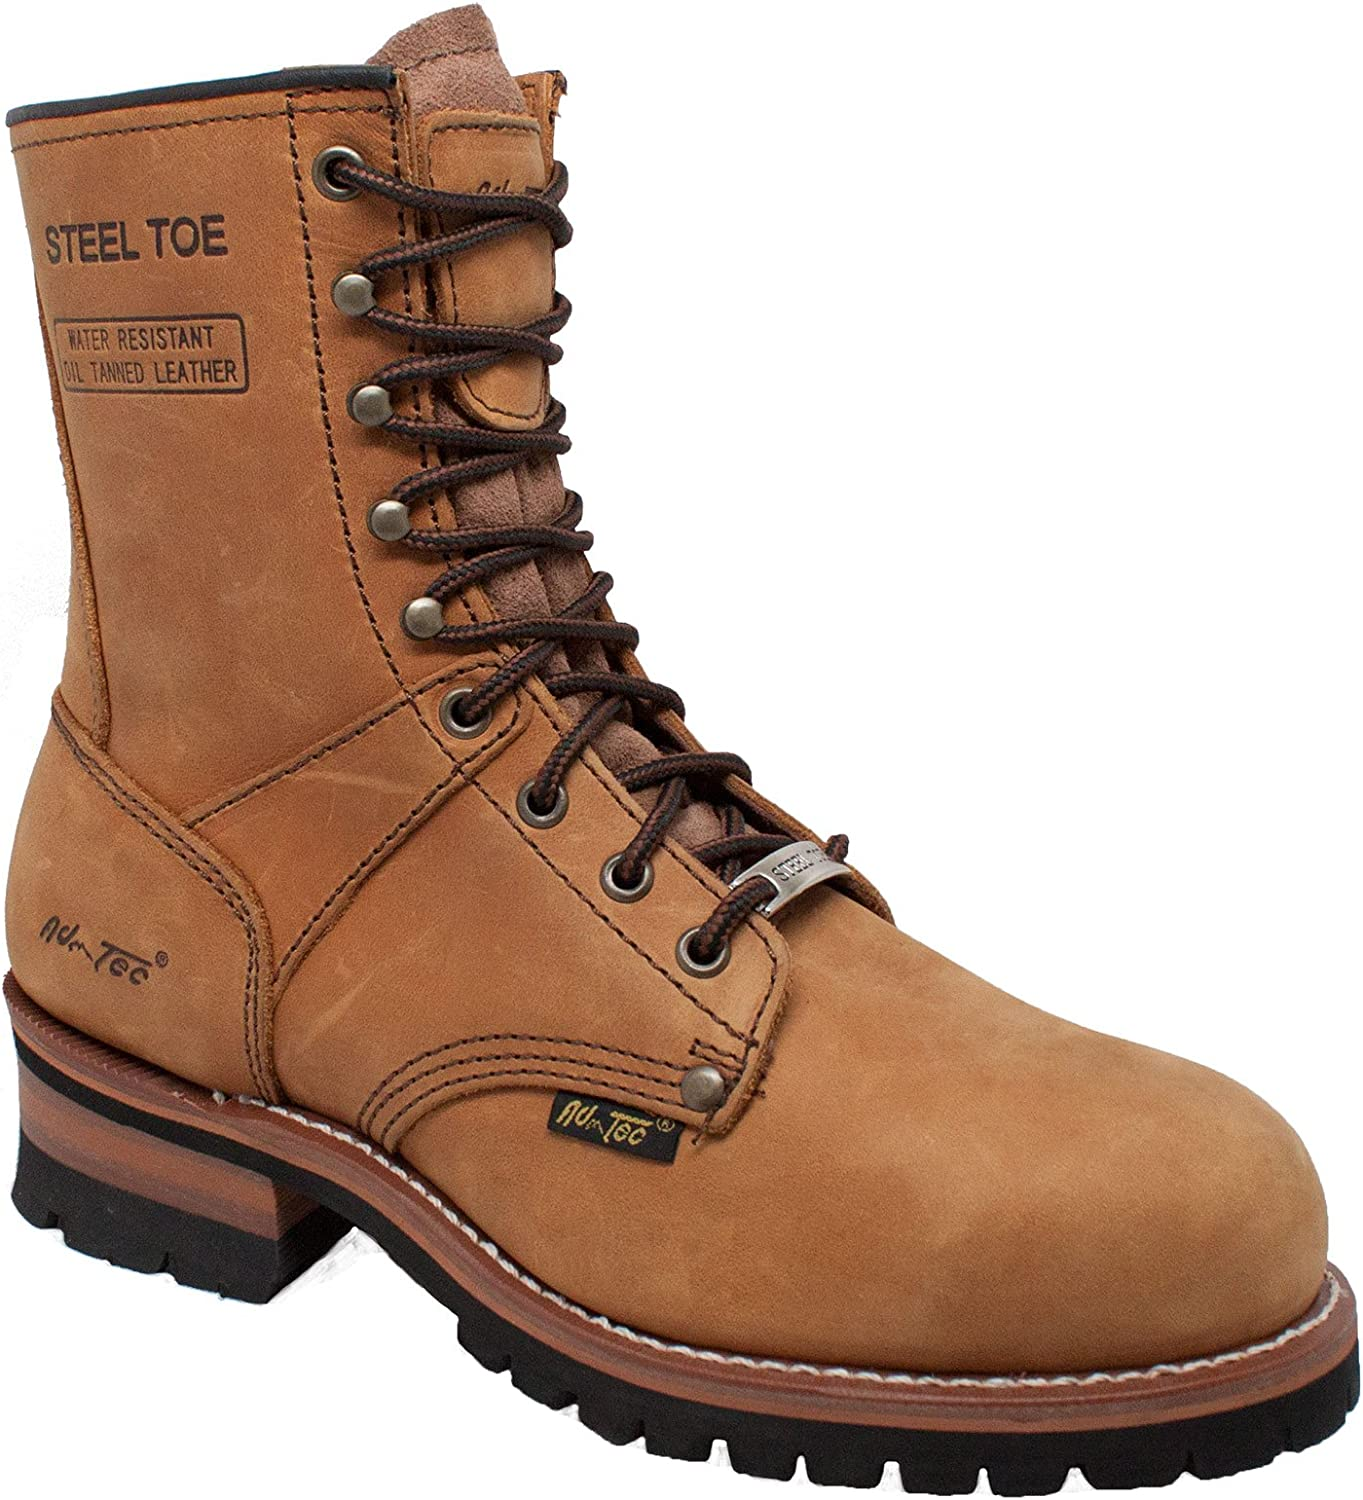 """Ad Tec 9"""" Super Logger Steel Toe Boots for Men, Leather Goodyear Welt Construction & Utility Footwear, Durable and Long Lasting Work Shoes, Lug Sole"""